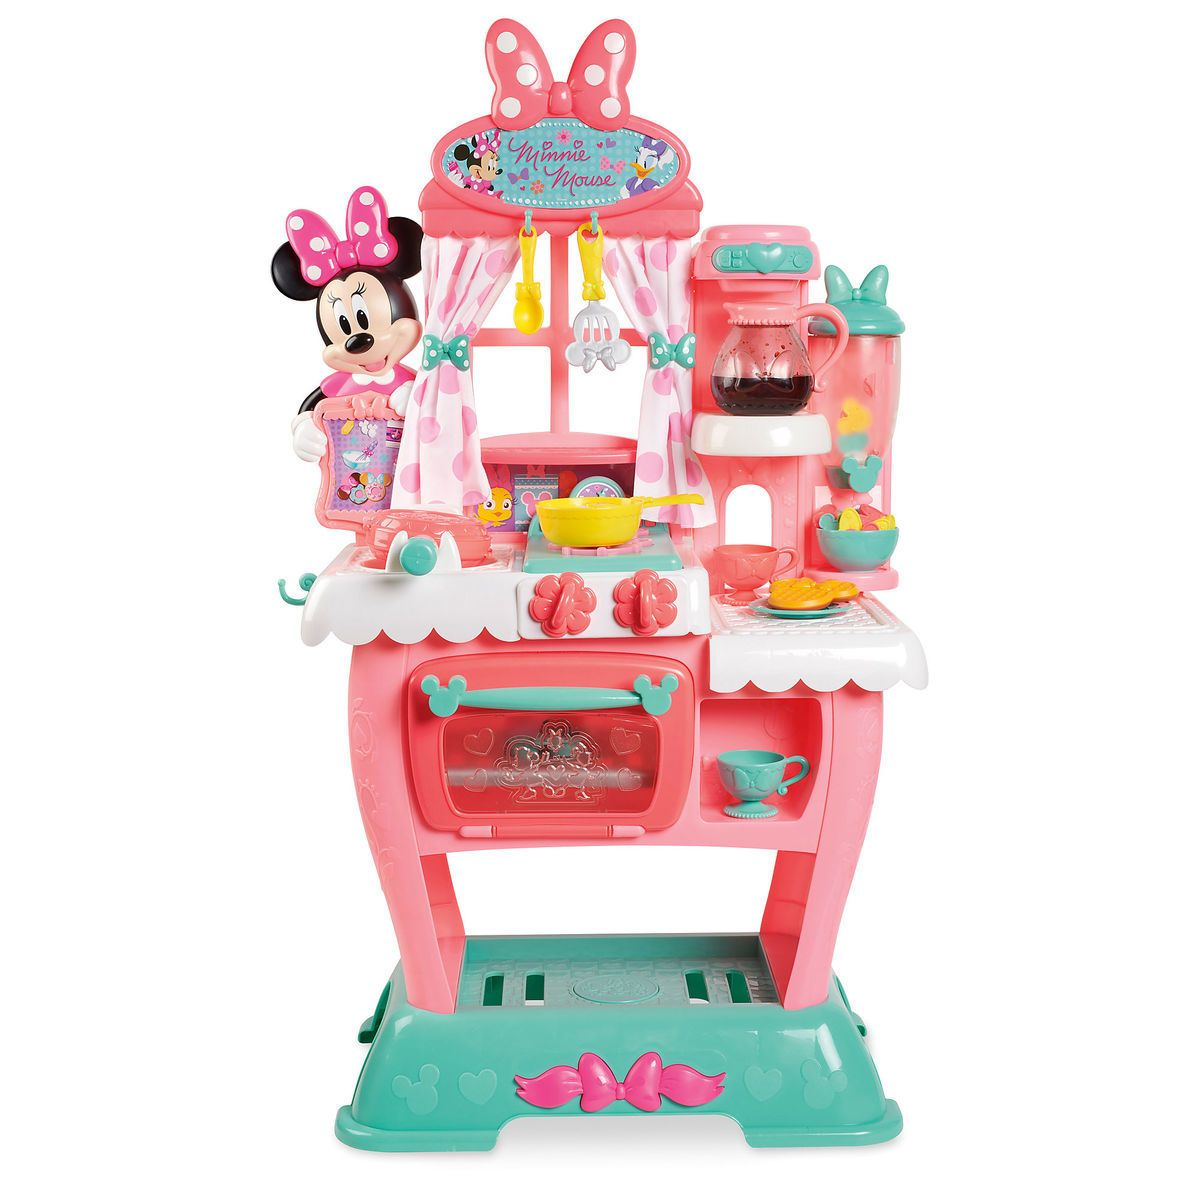 Minnie Mouse Brunch Cafe Playset That Little Coffee Pot Is Too